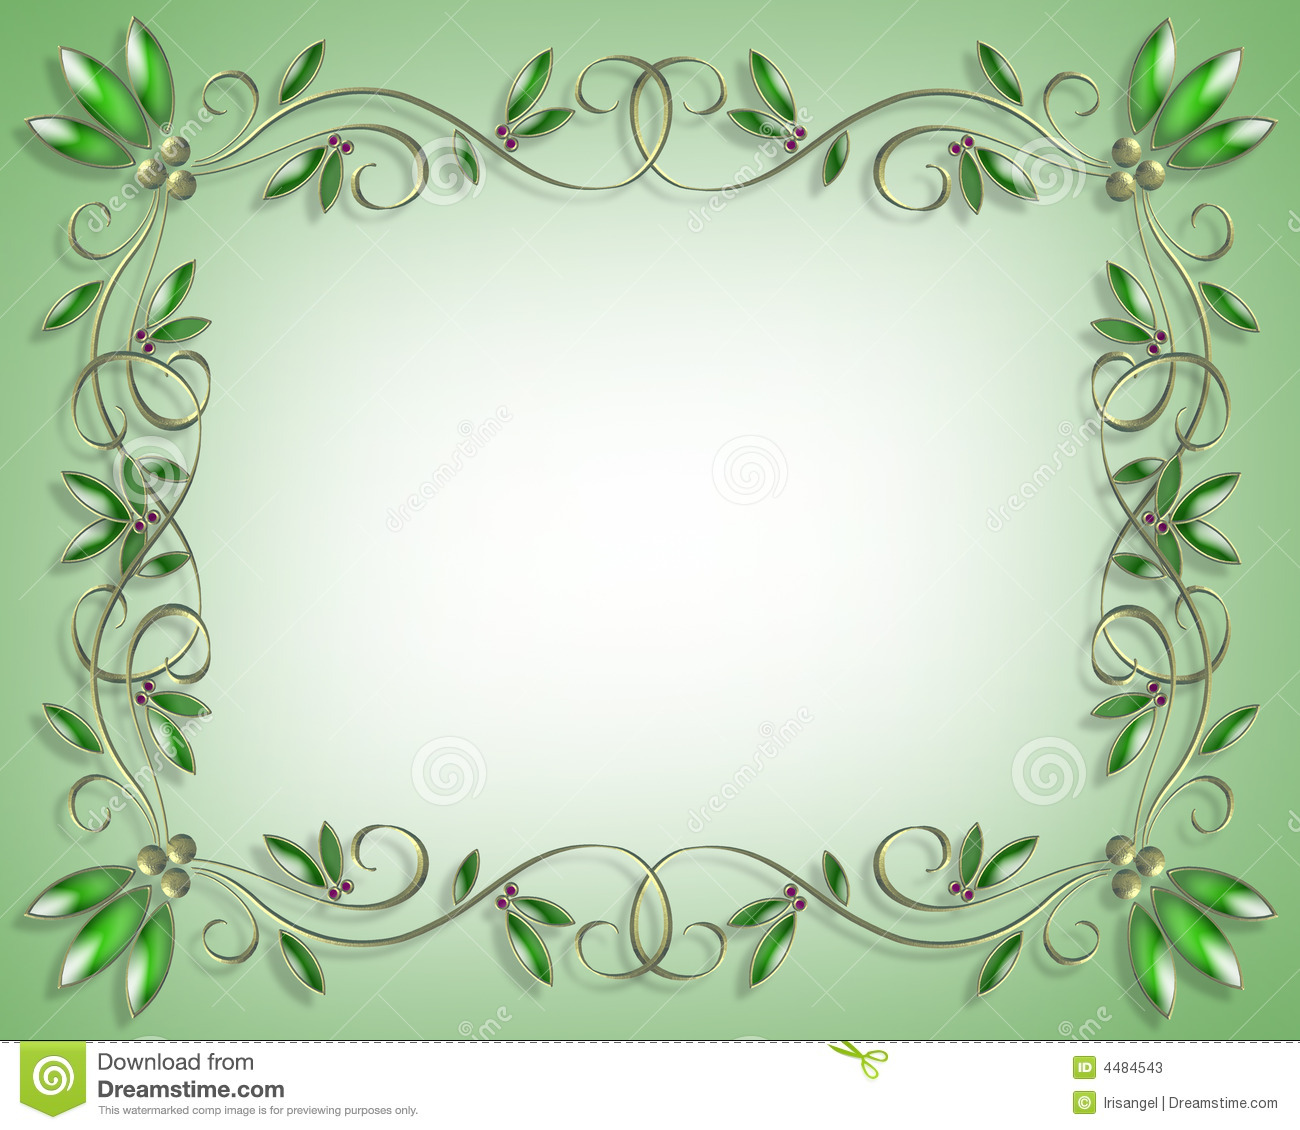 Holiday greeting background border or frame with copy space